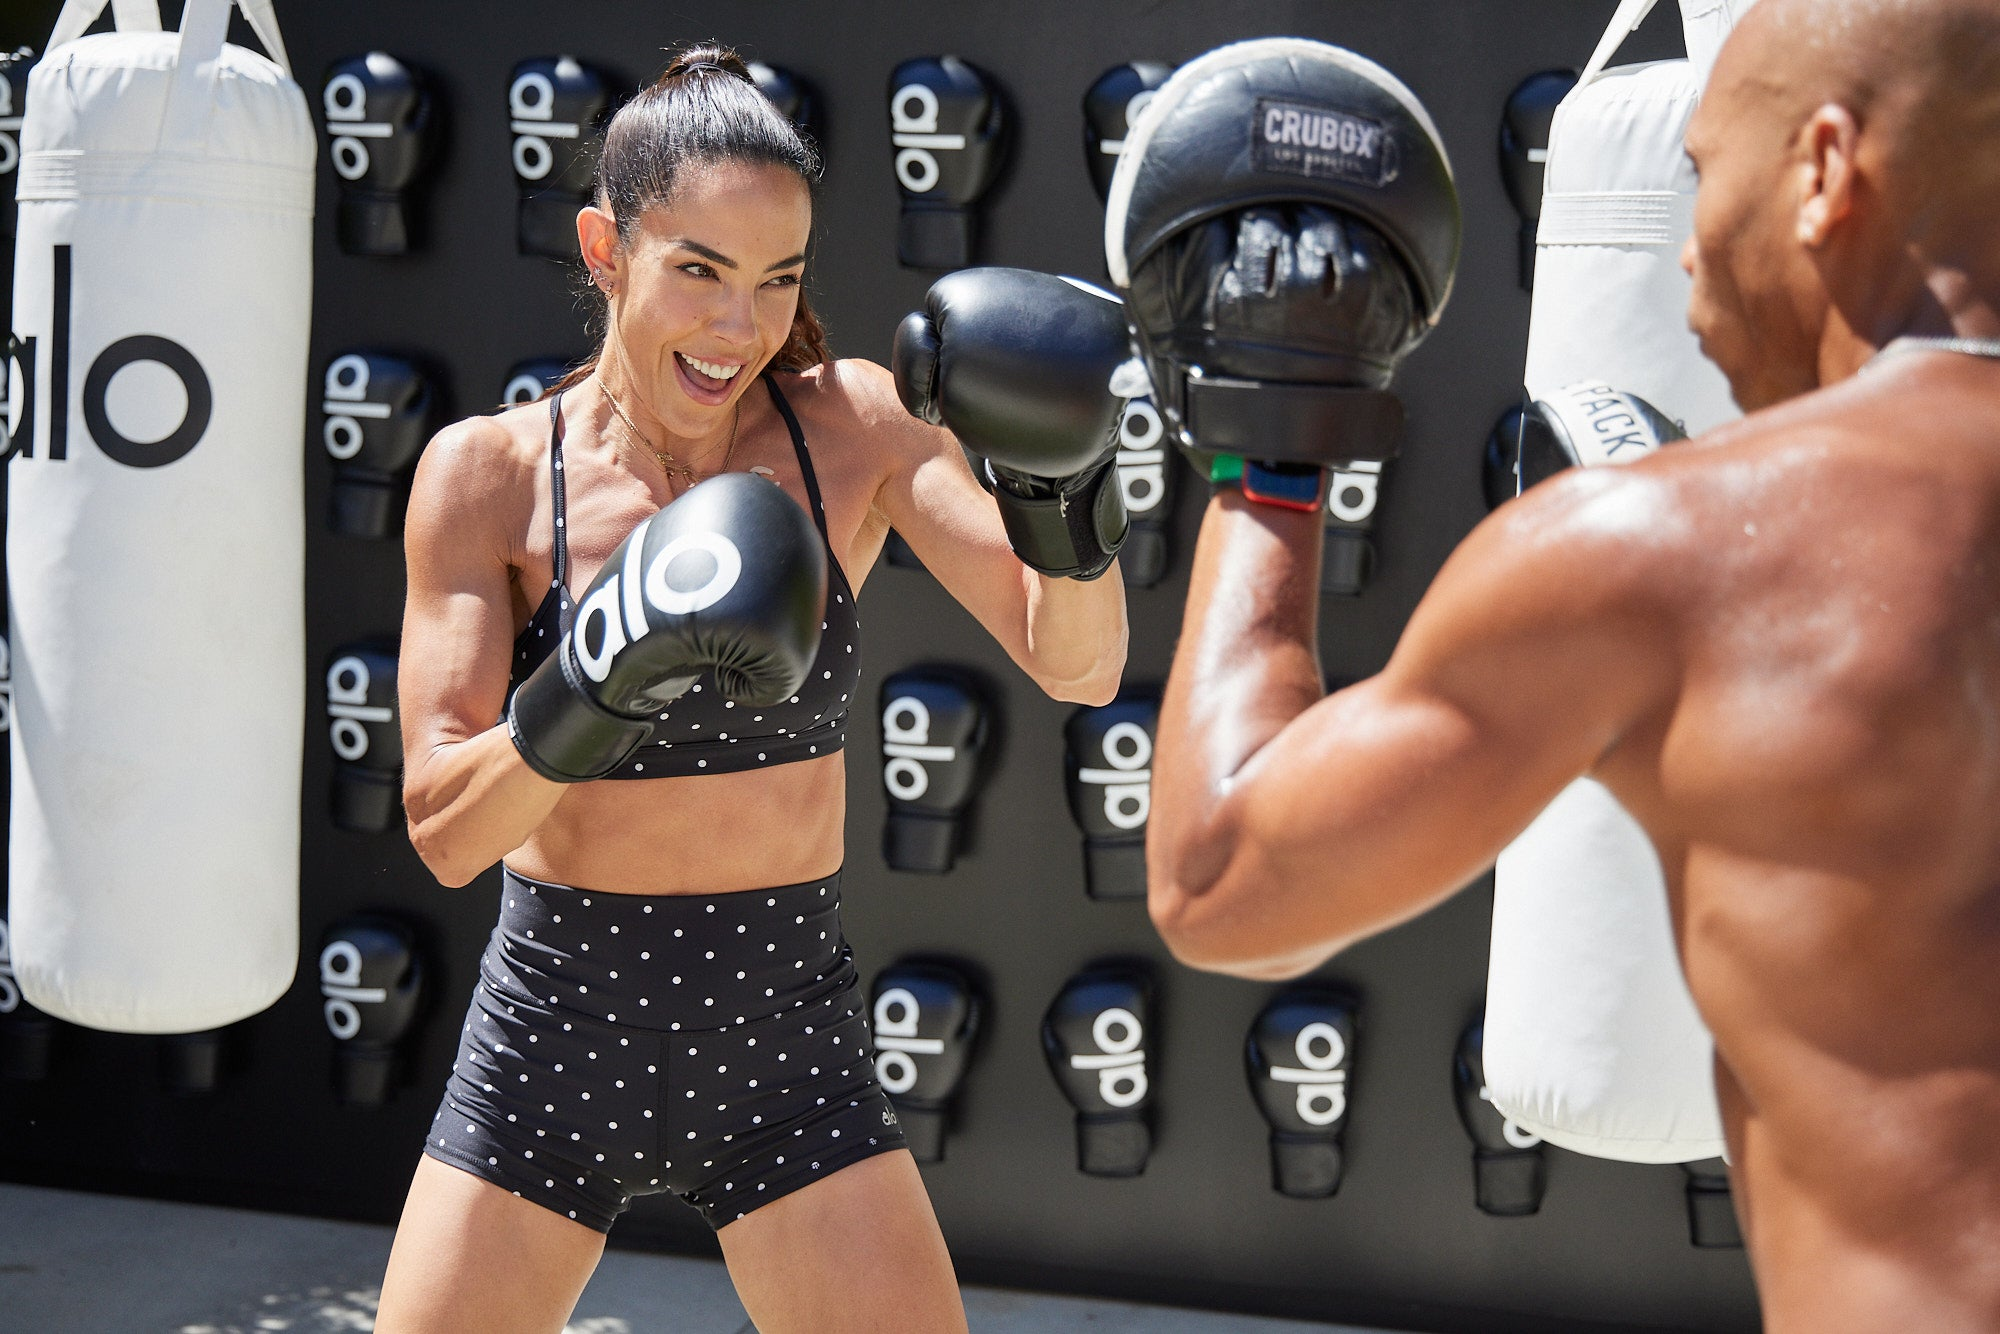 @Kupahjames leading a woman wearing the Airlift Intrigue Polka Bra and High-Waist Short Set through a boxing session.